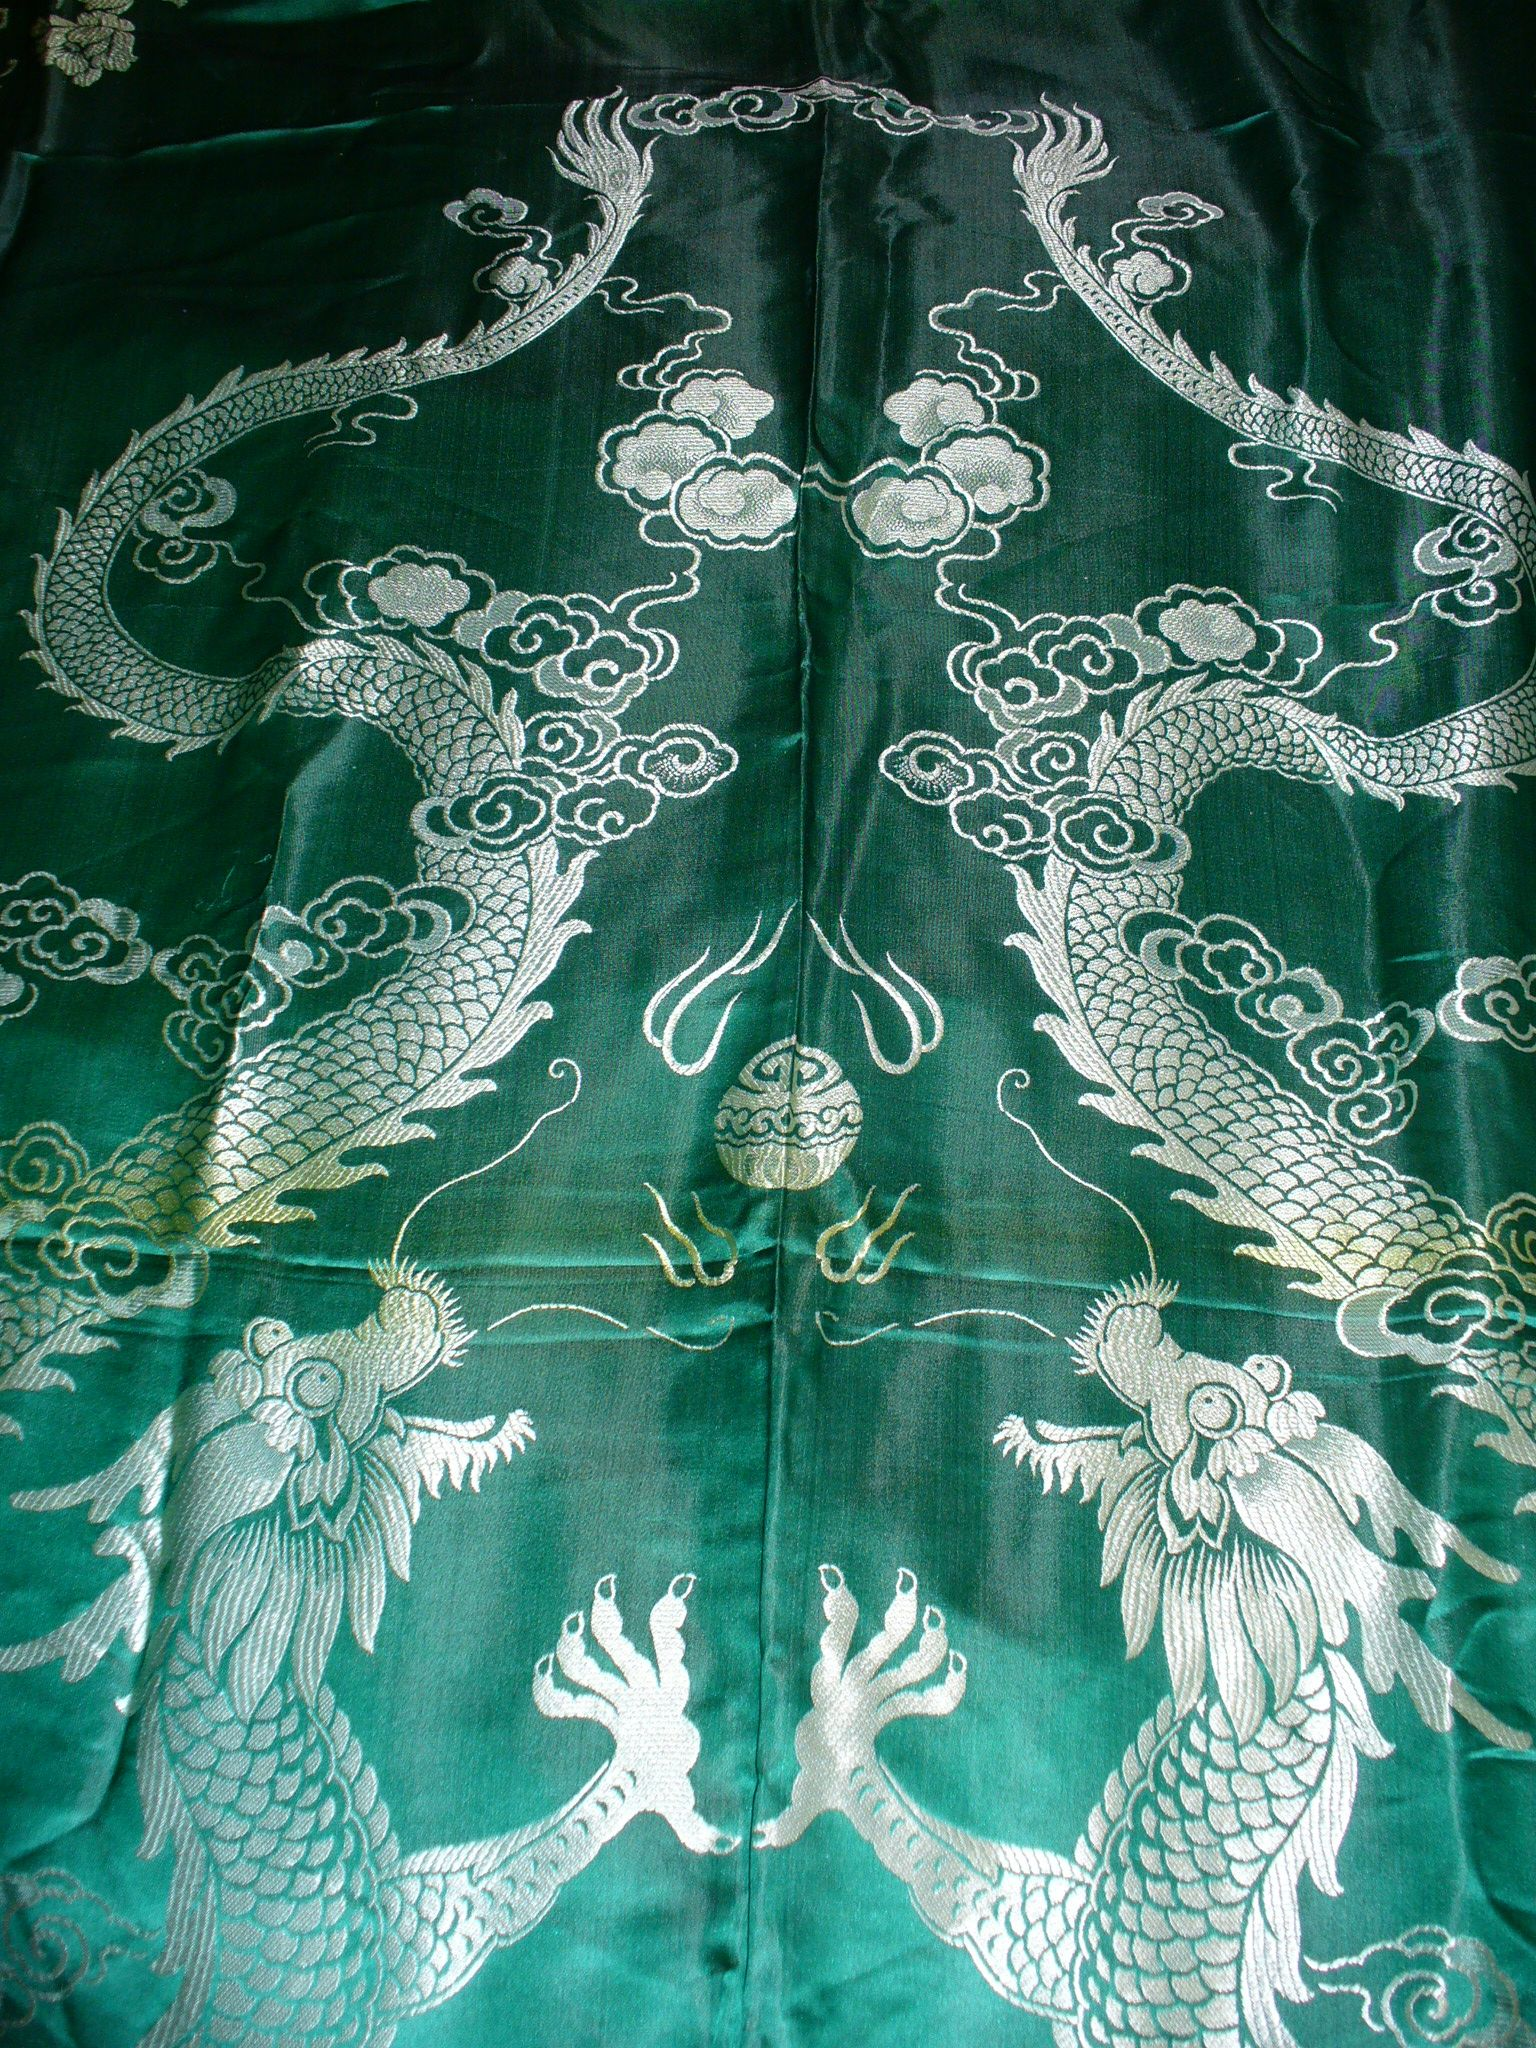 I have this wonderful antique Chinese emerald green damask